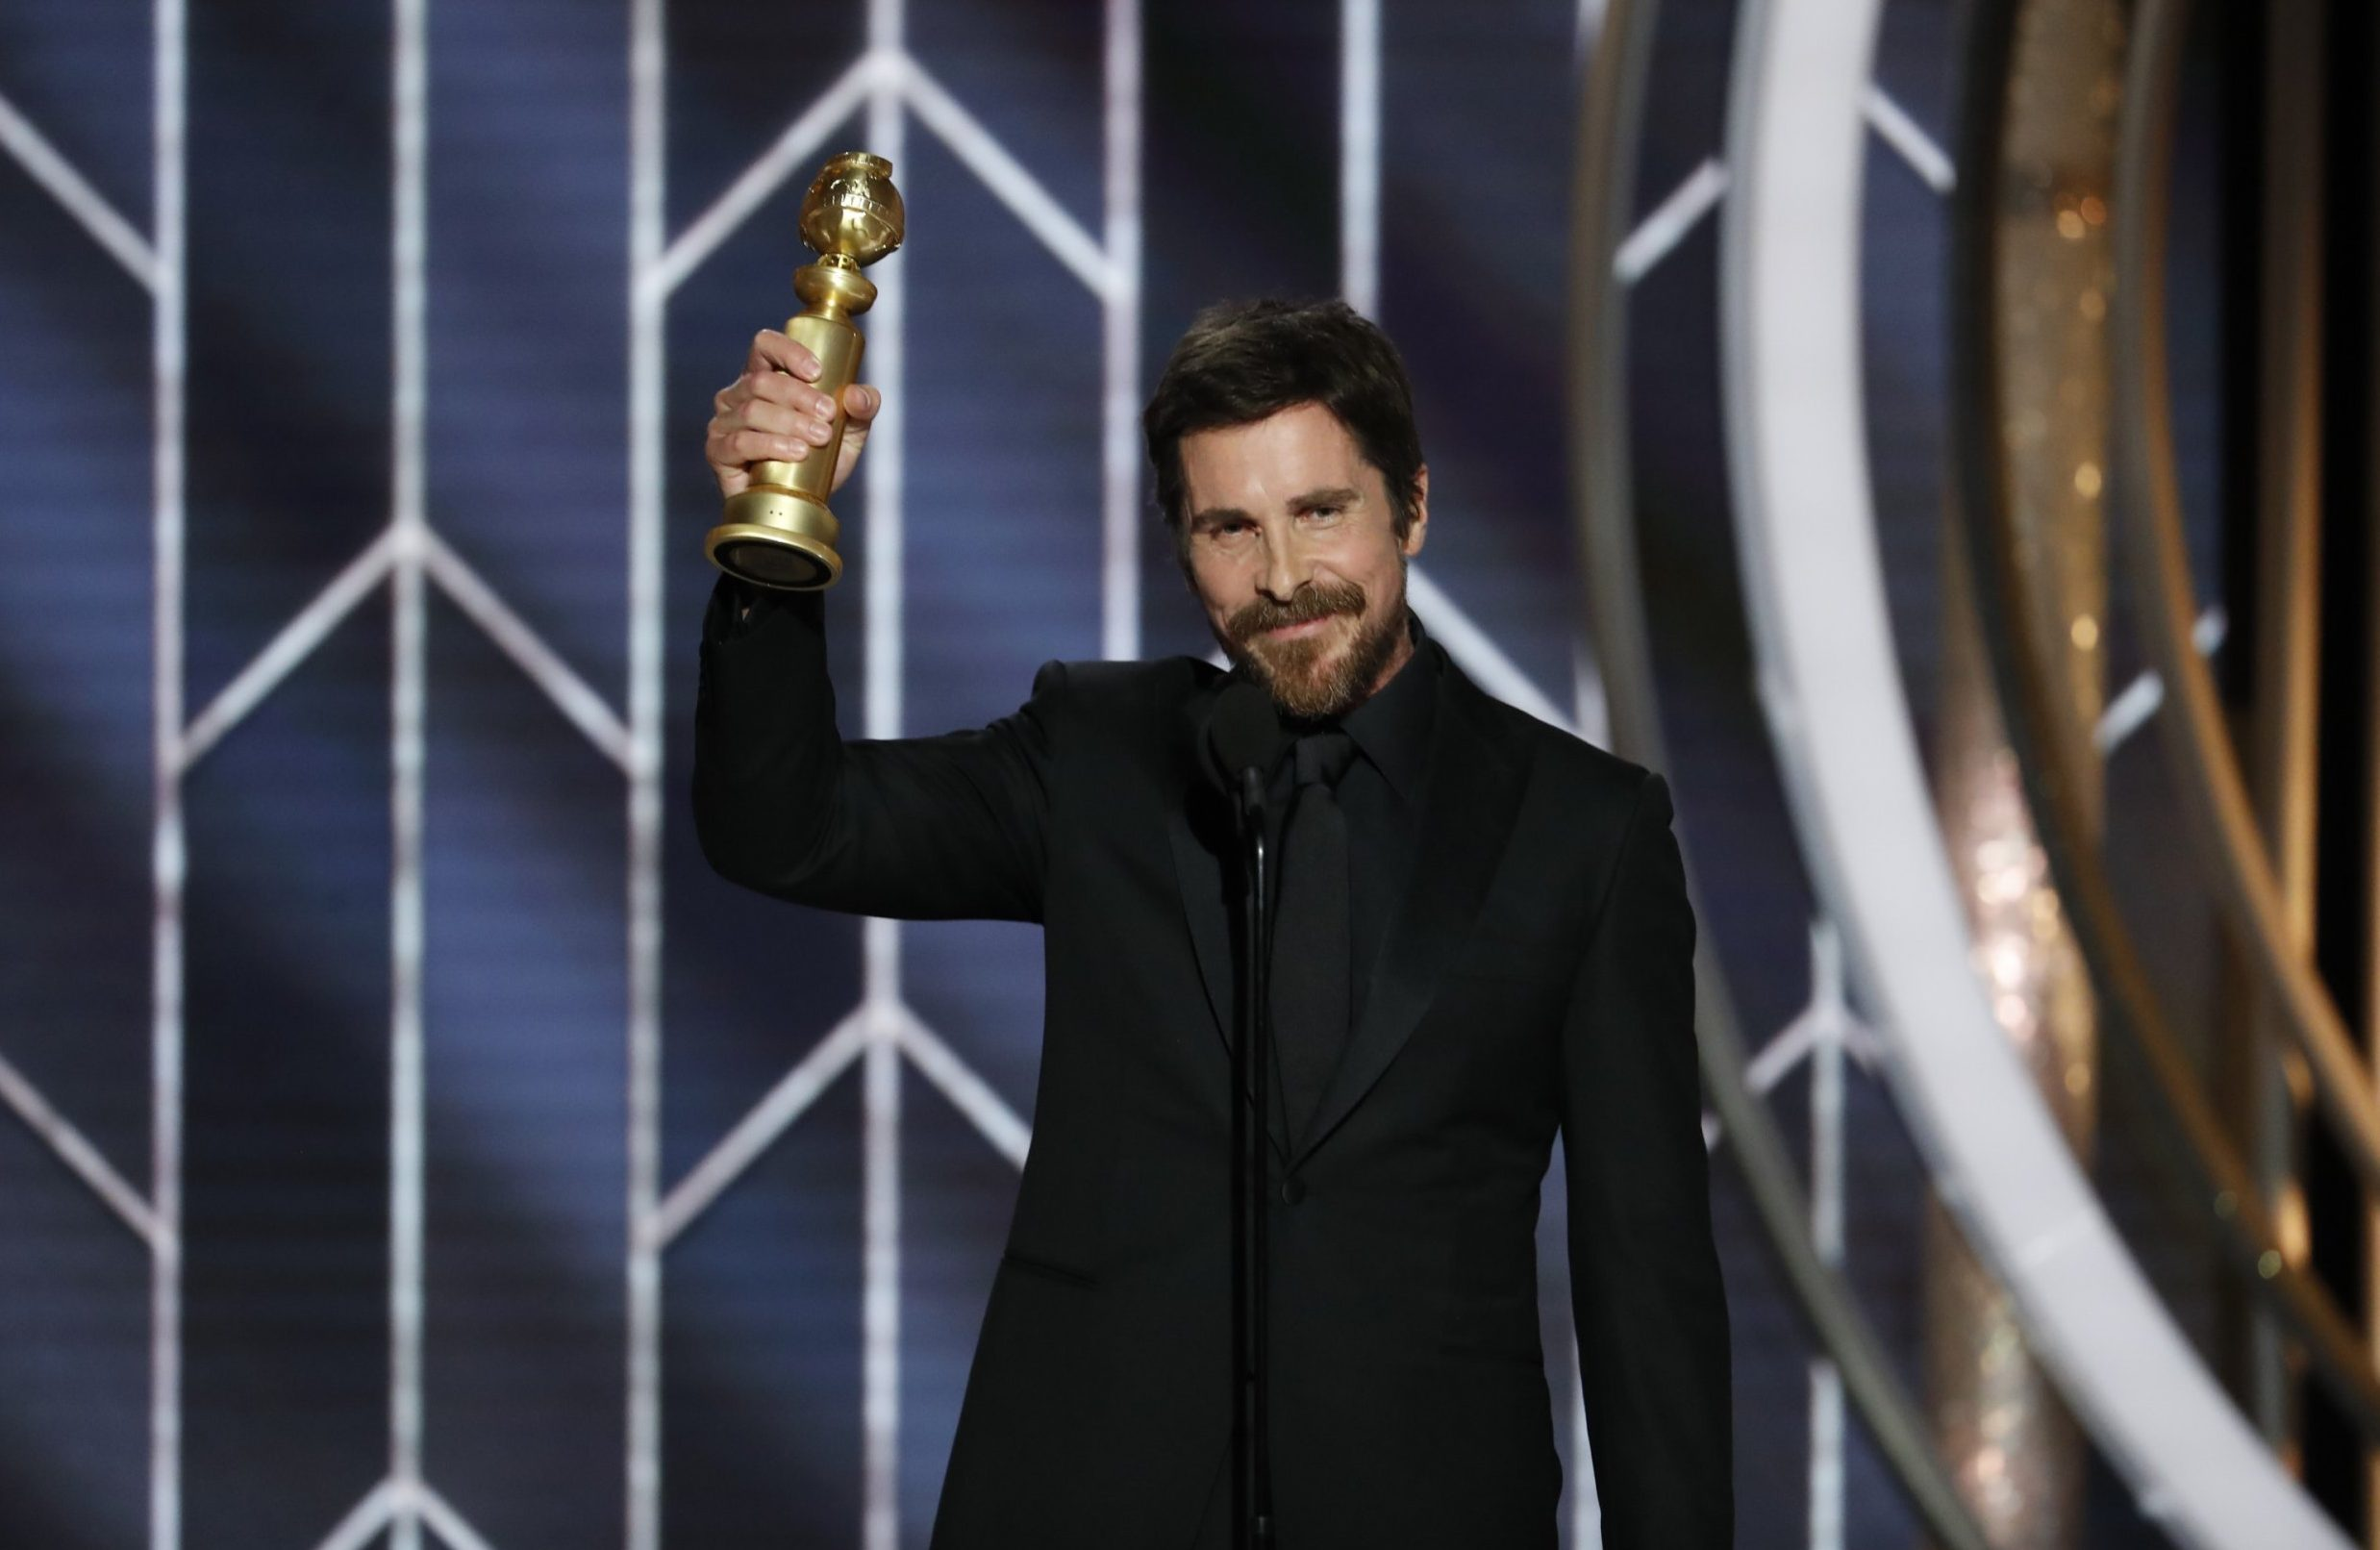 Church Of Satan congratulates Christian Bale on Golden Globes win (and he's their favourite Batman)